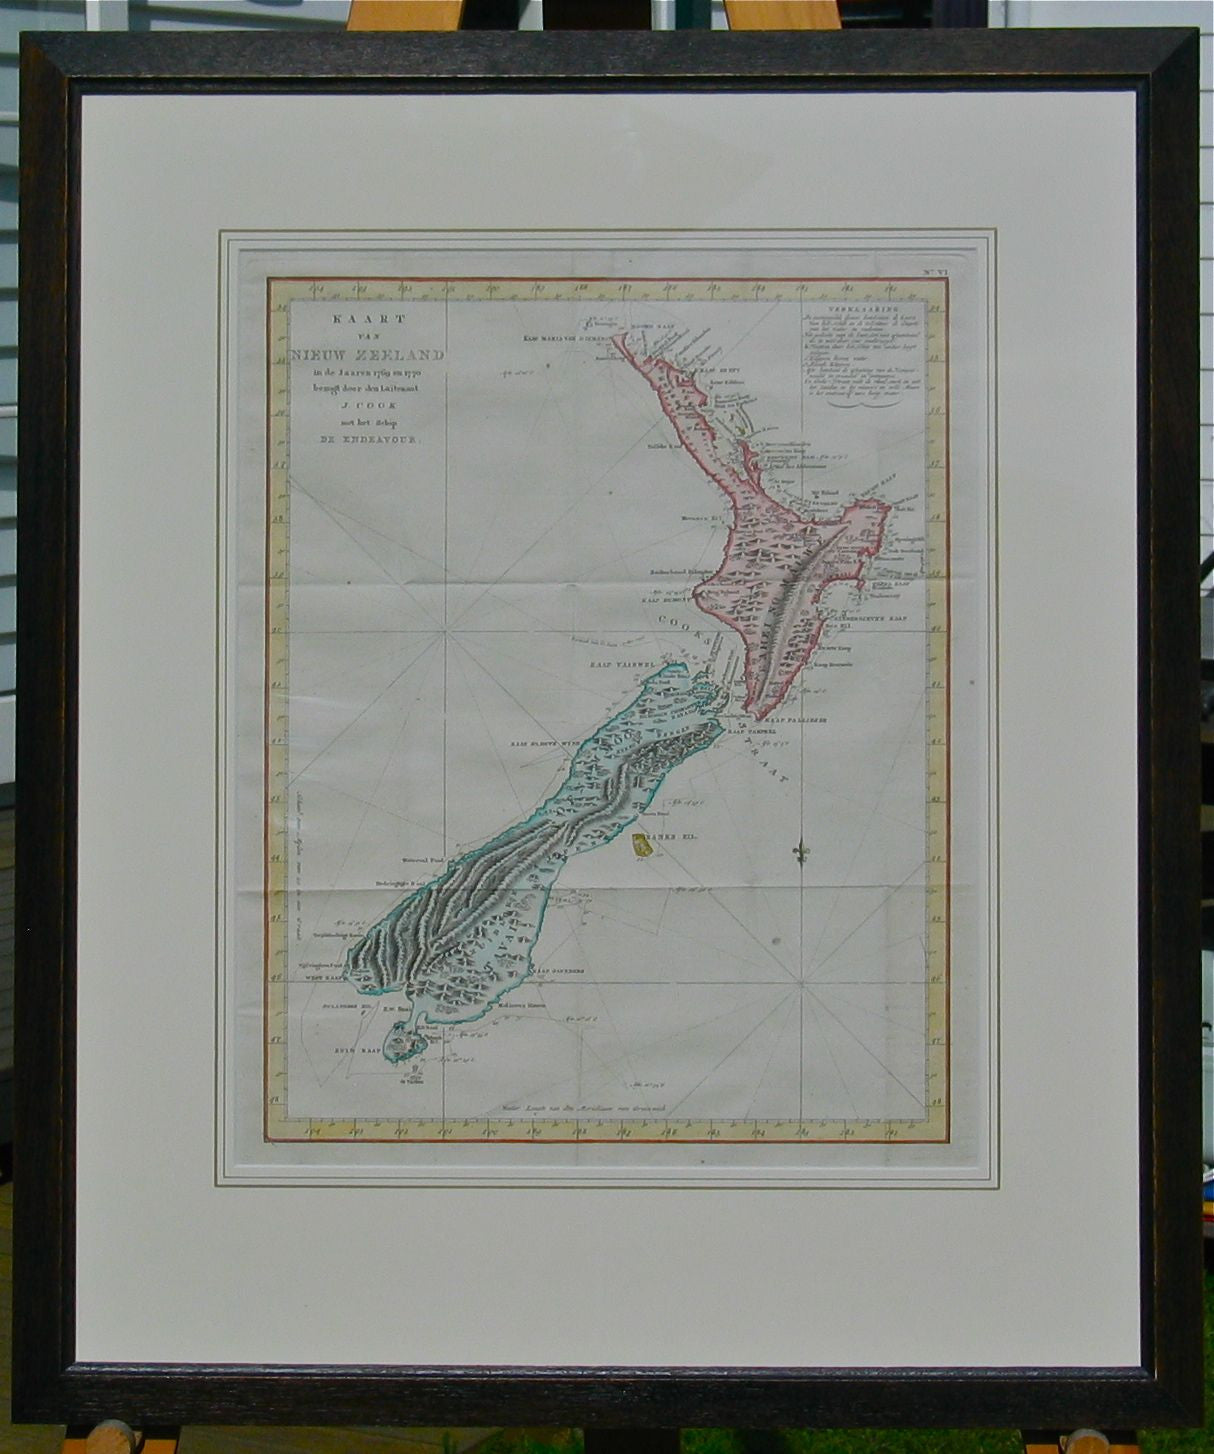 Cook's chart of New Zealand